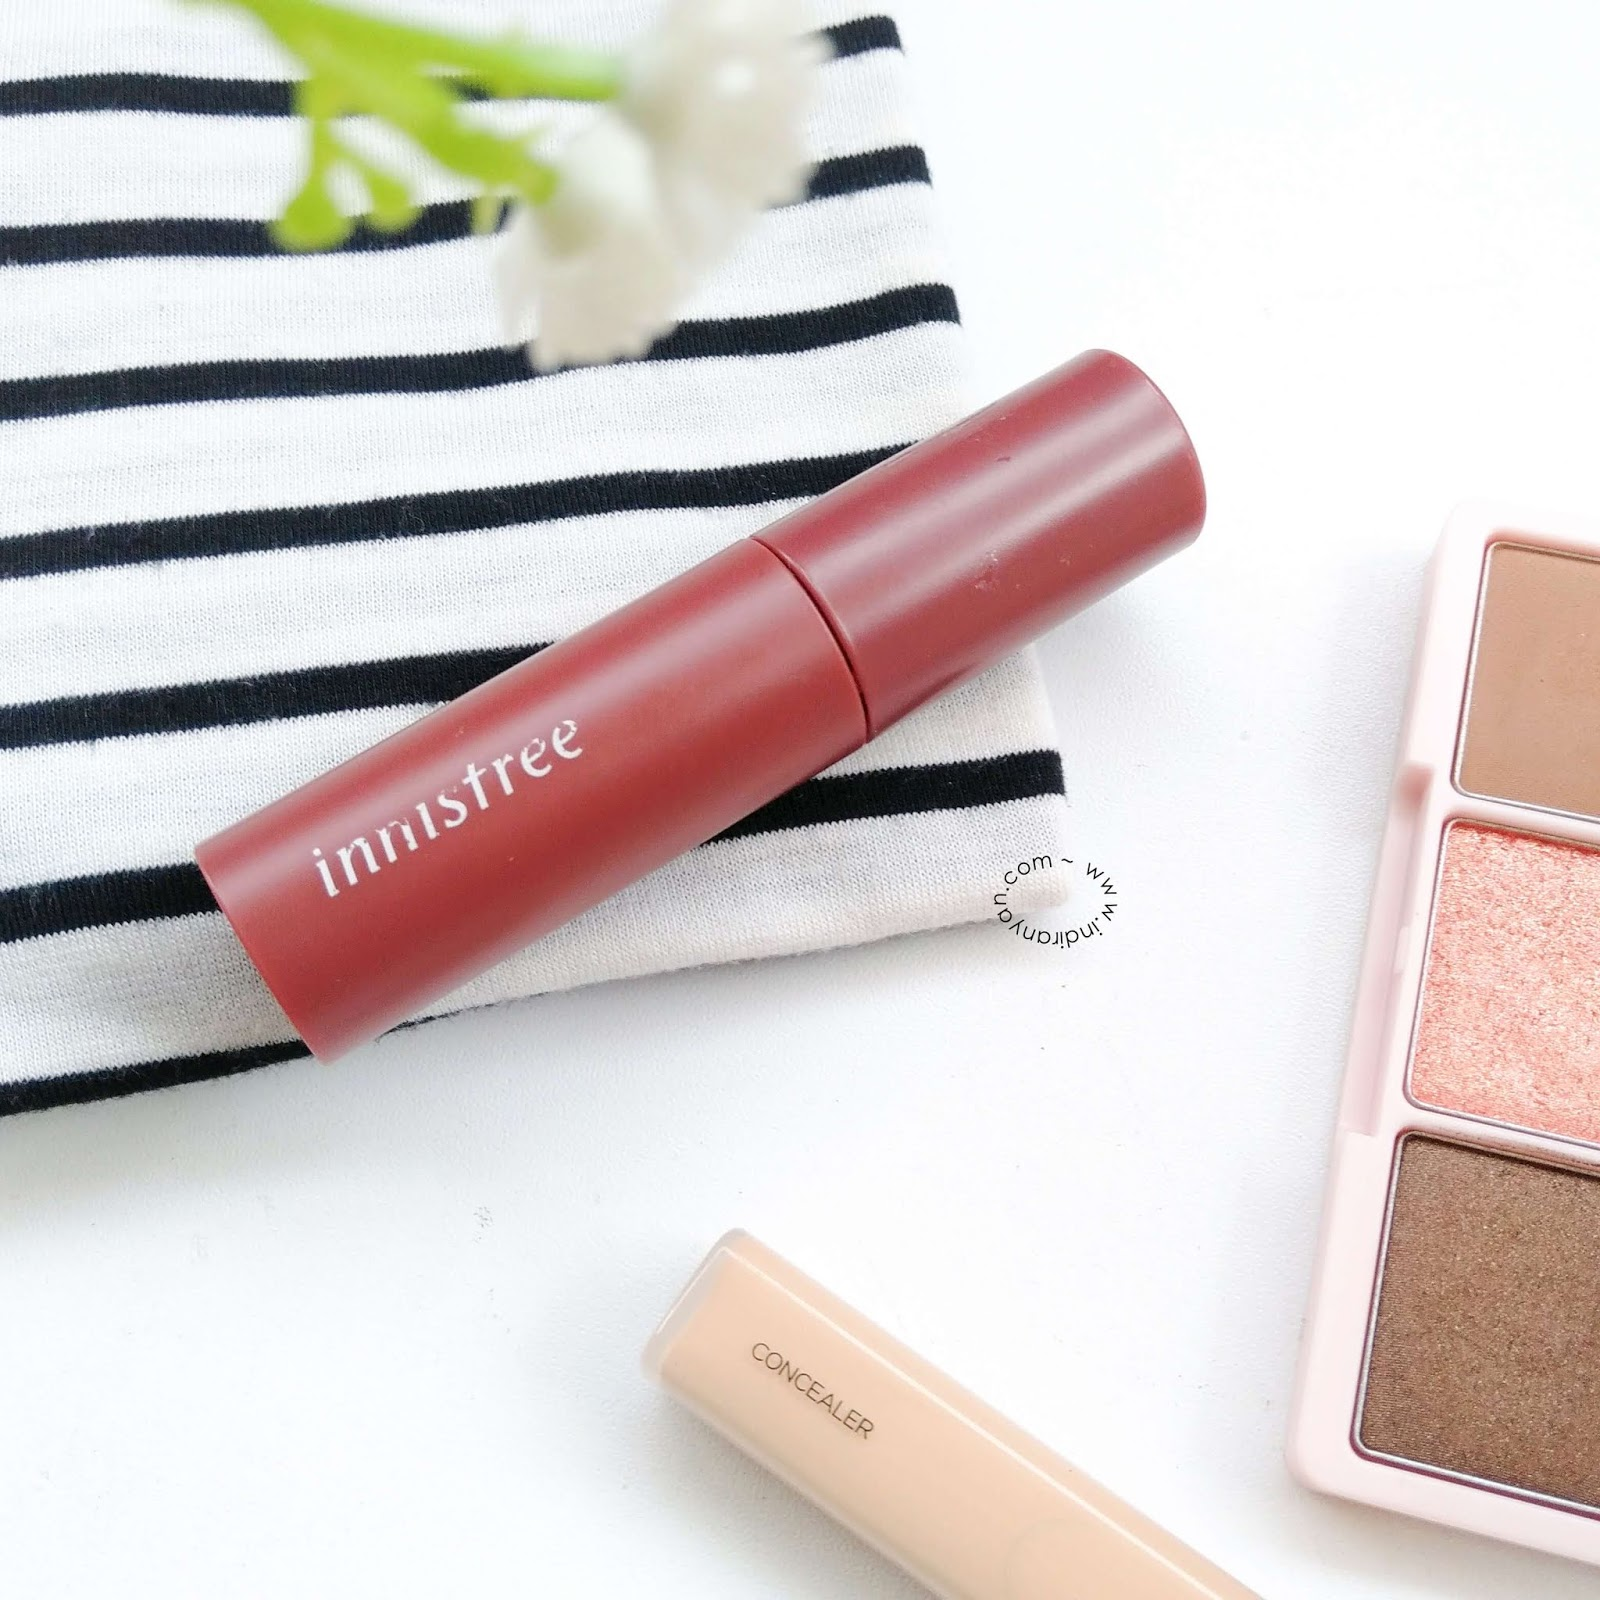 innisfree-vivid-cotton-ink-review-indonesia